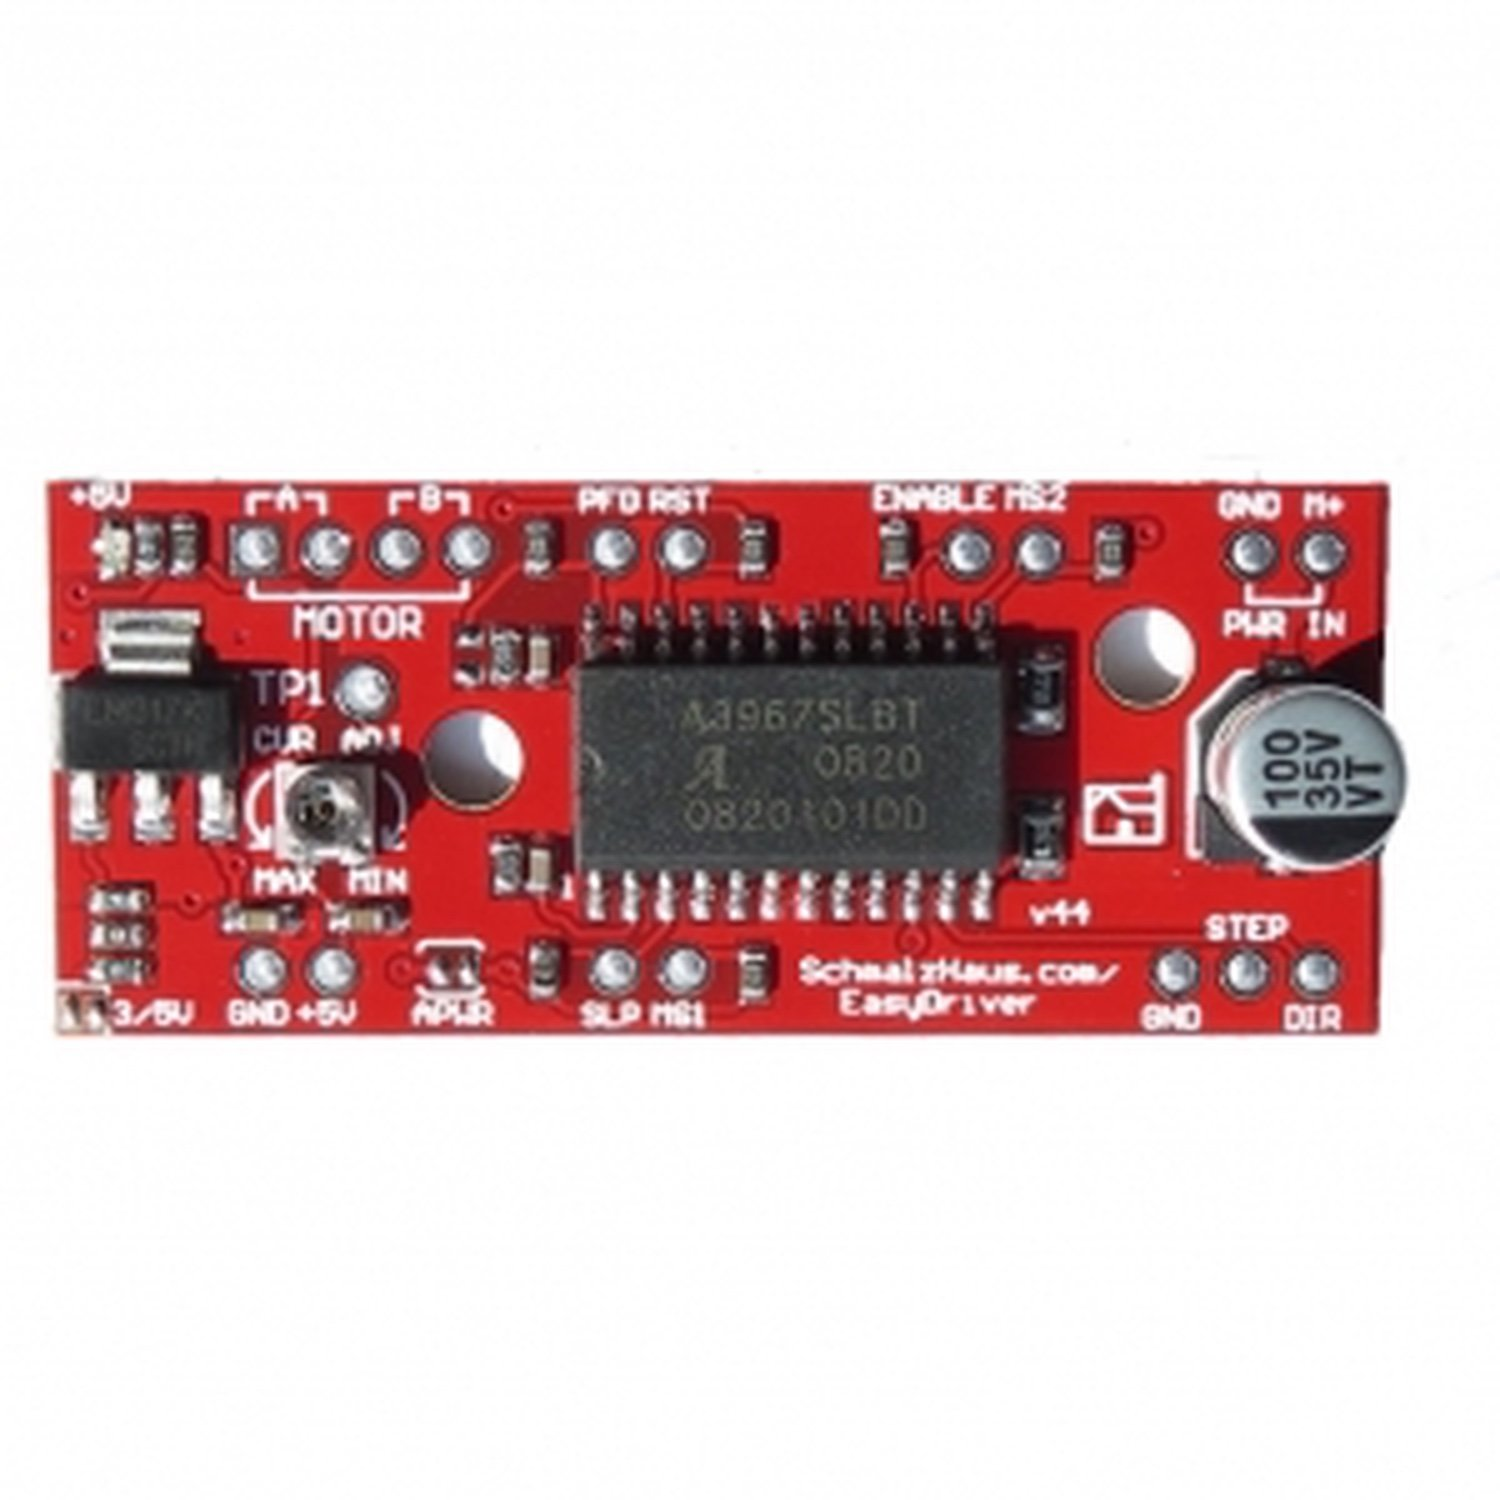 A3967 V44 EasyDriver Stepper Engine Driver Development Board-arduino compatible rumba motherboard drv8825 a4988 stepper motor driver 12864 lcd display 4015 fan jumper wire for reprap 3d printer parts